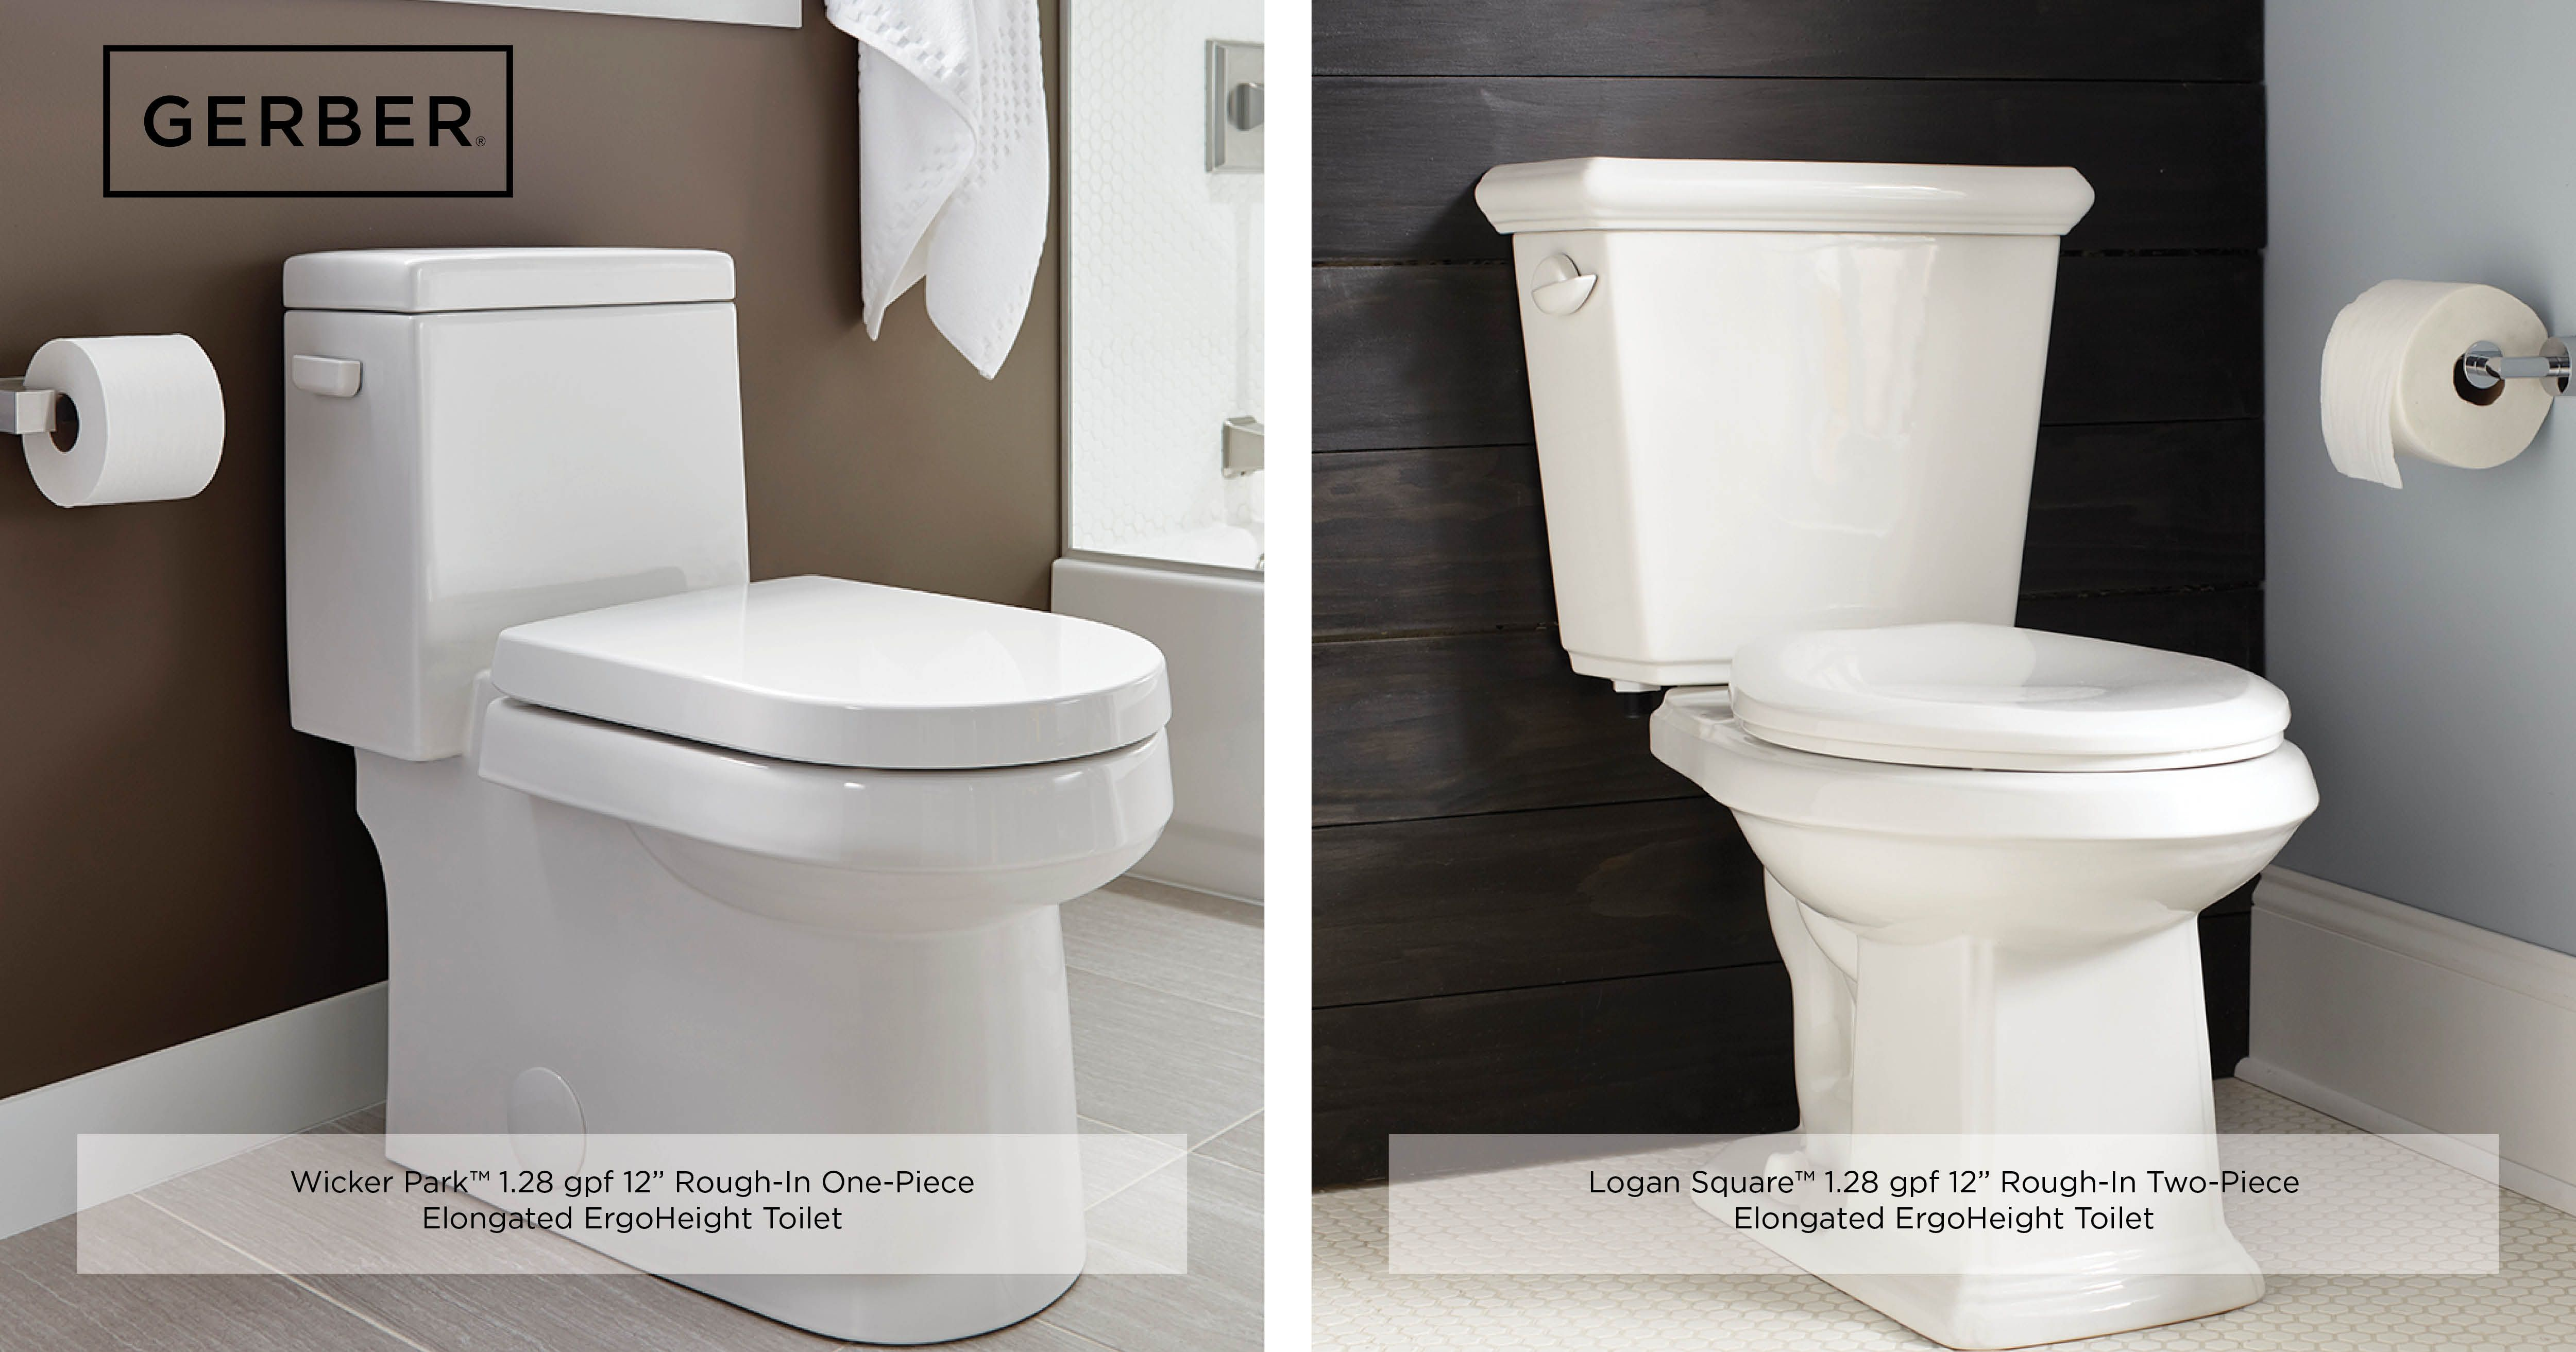 Find The Loo That S Right For You One Piece Toilets With